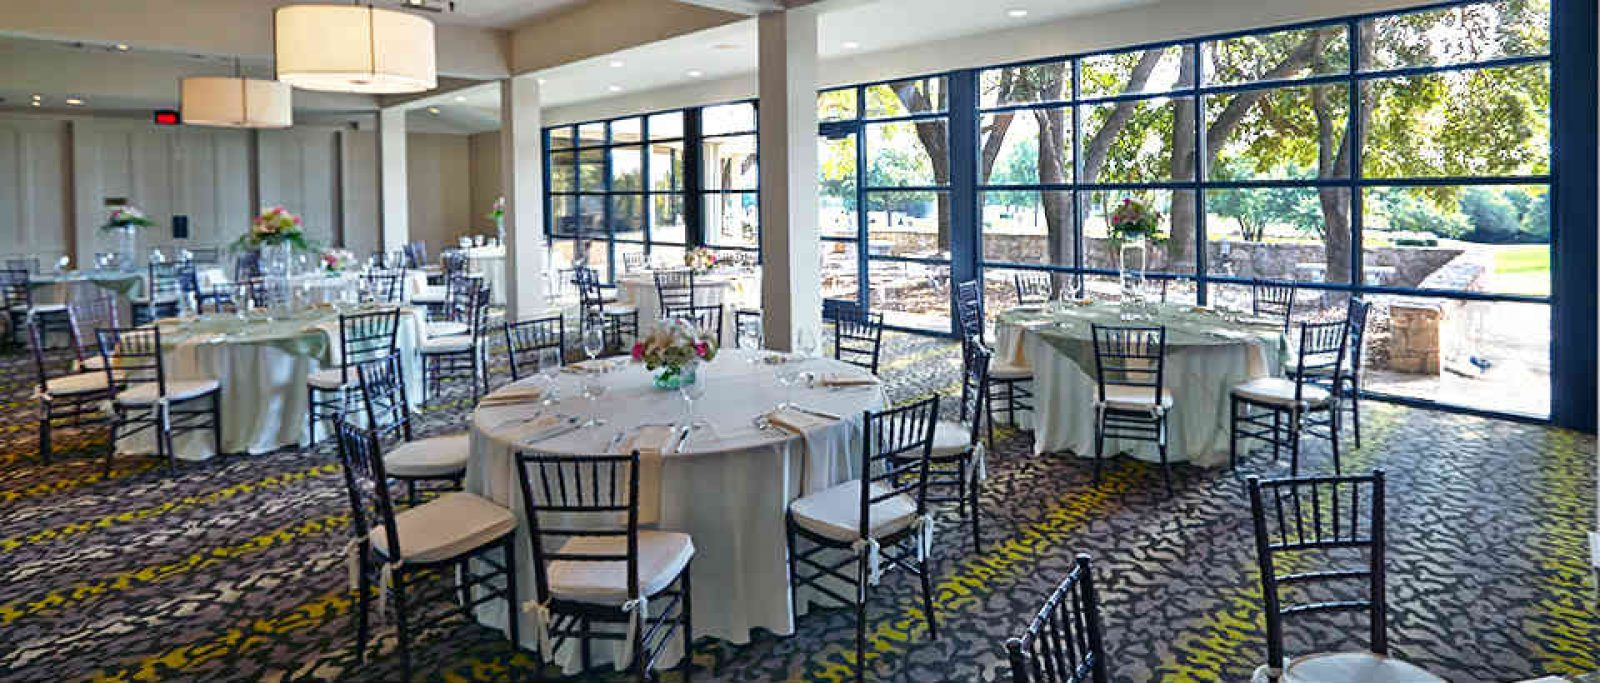 Canyon-Creek-Country-Club-Richardson-TX-private-event-room-960x410_rotatingGalleryFront